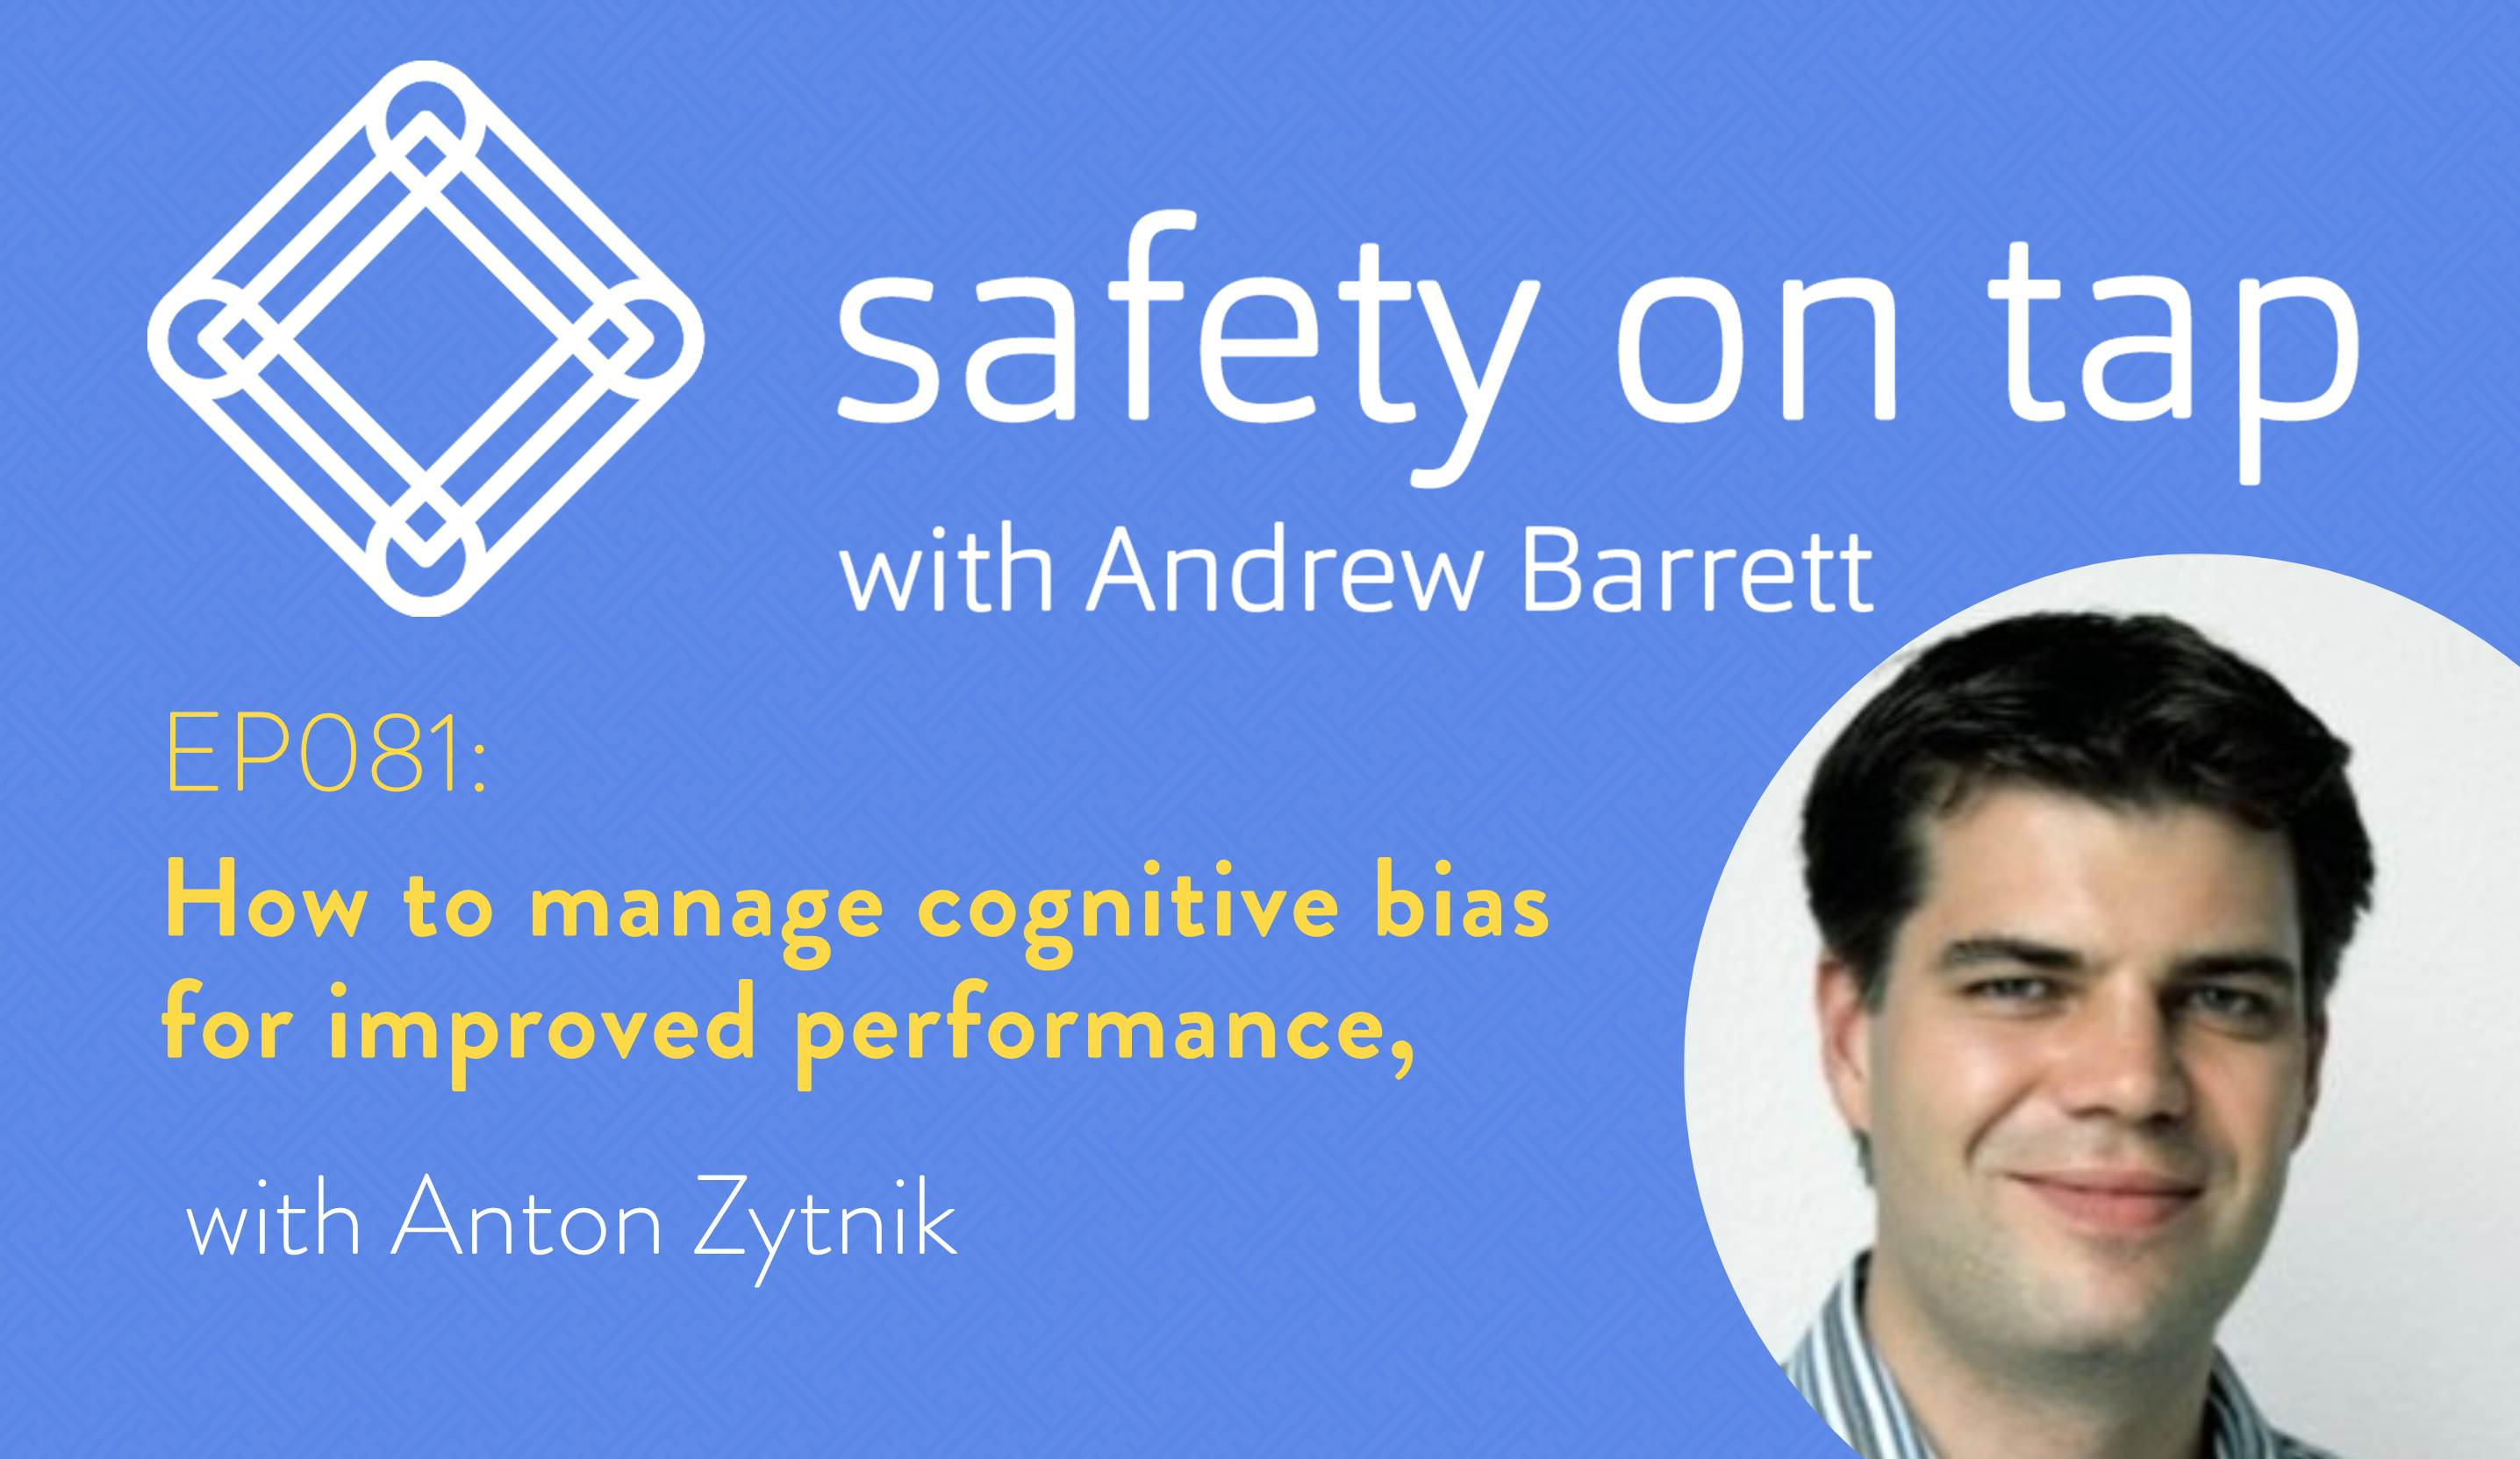 Ep081: How to manage cognitive bias for improved performance, with Anton Zytnik